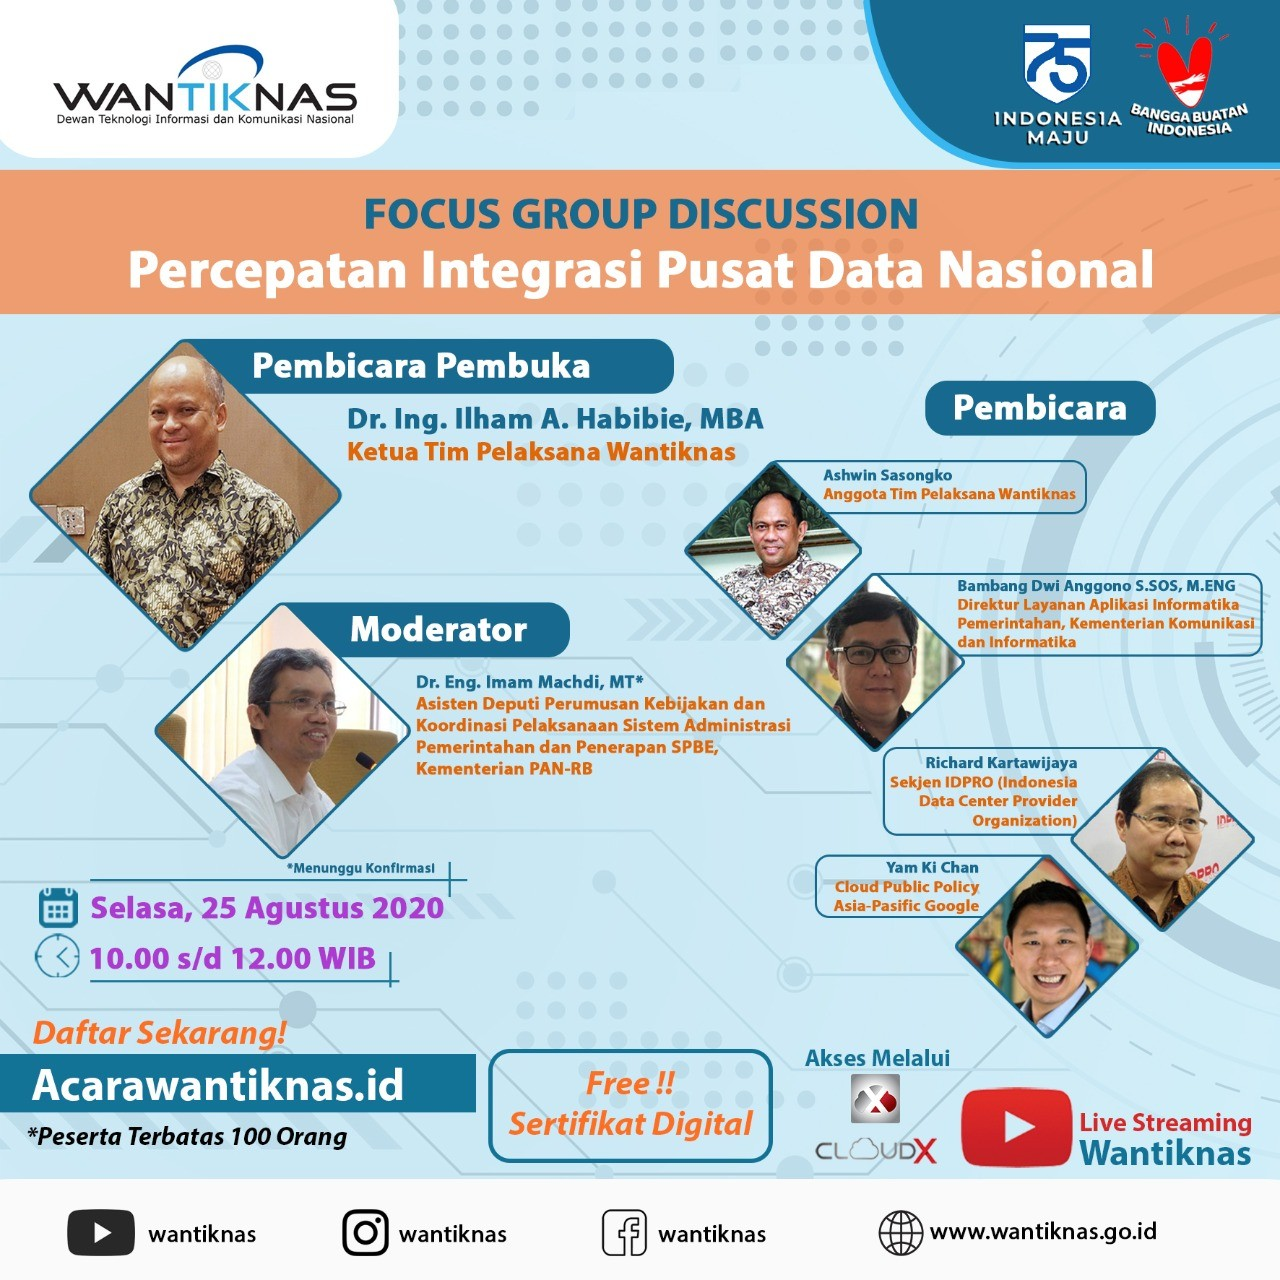 Percepatan Integrasi Pusat Data Nasional